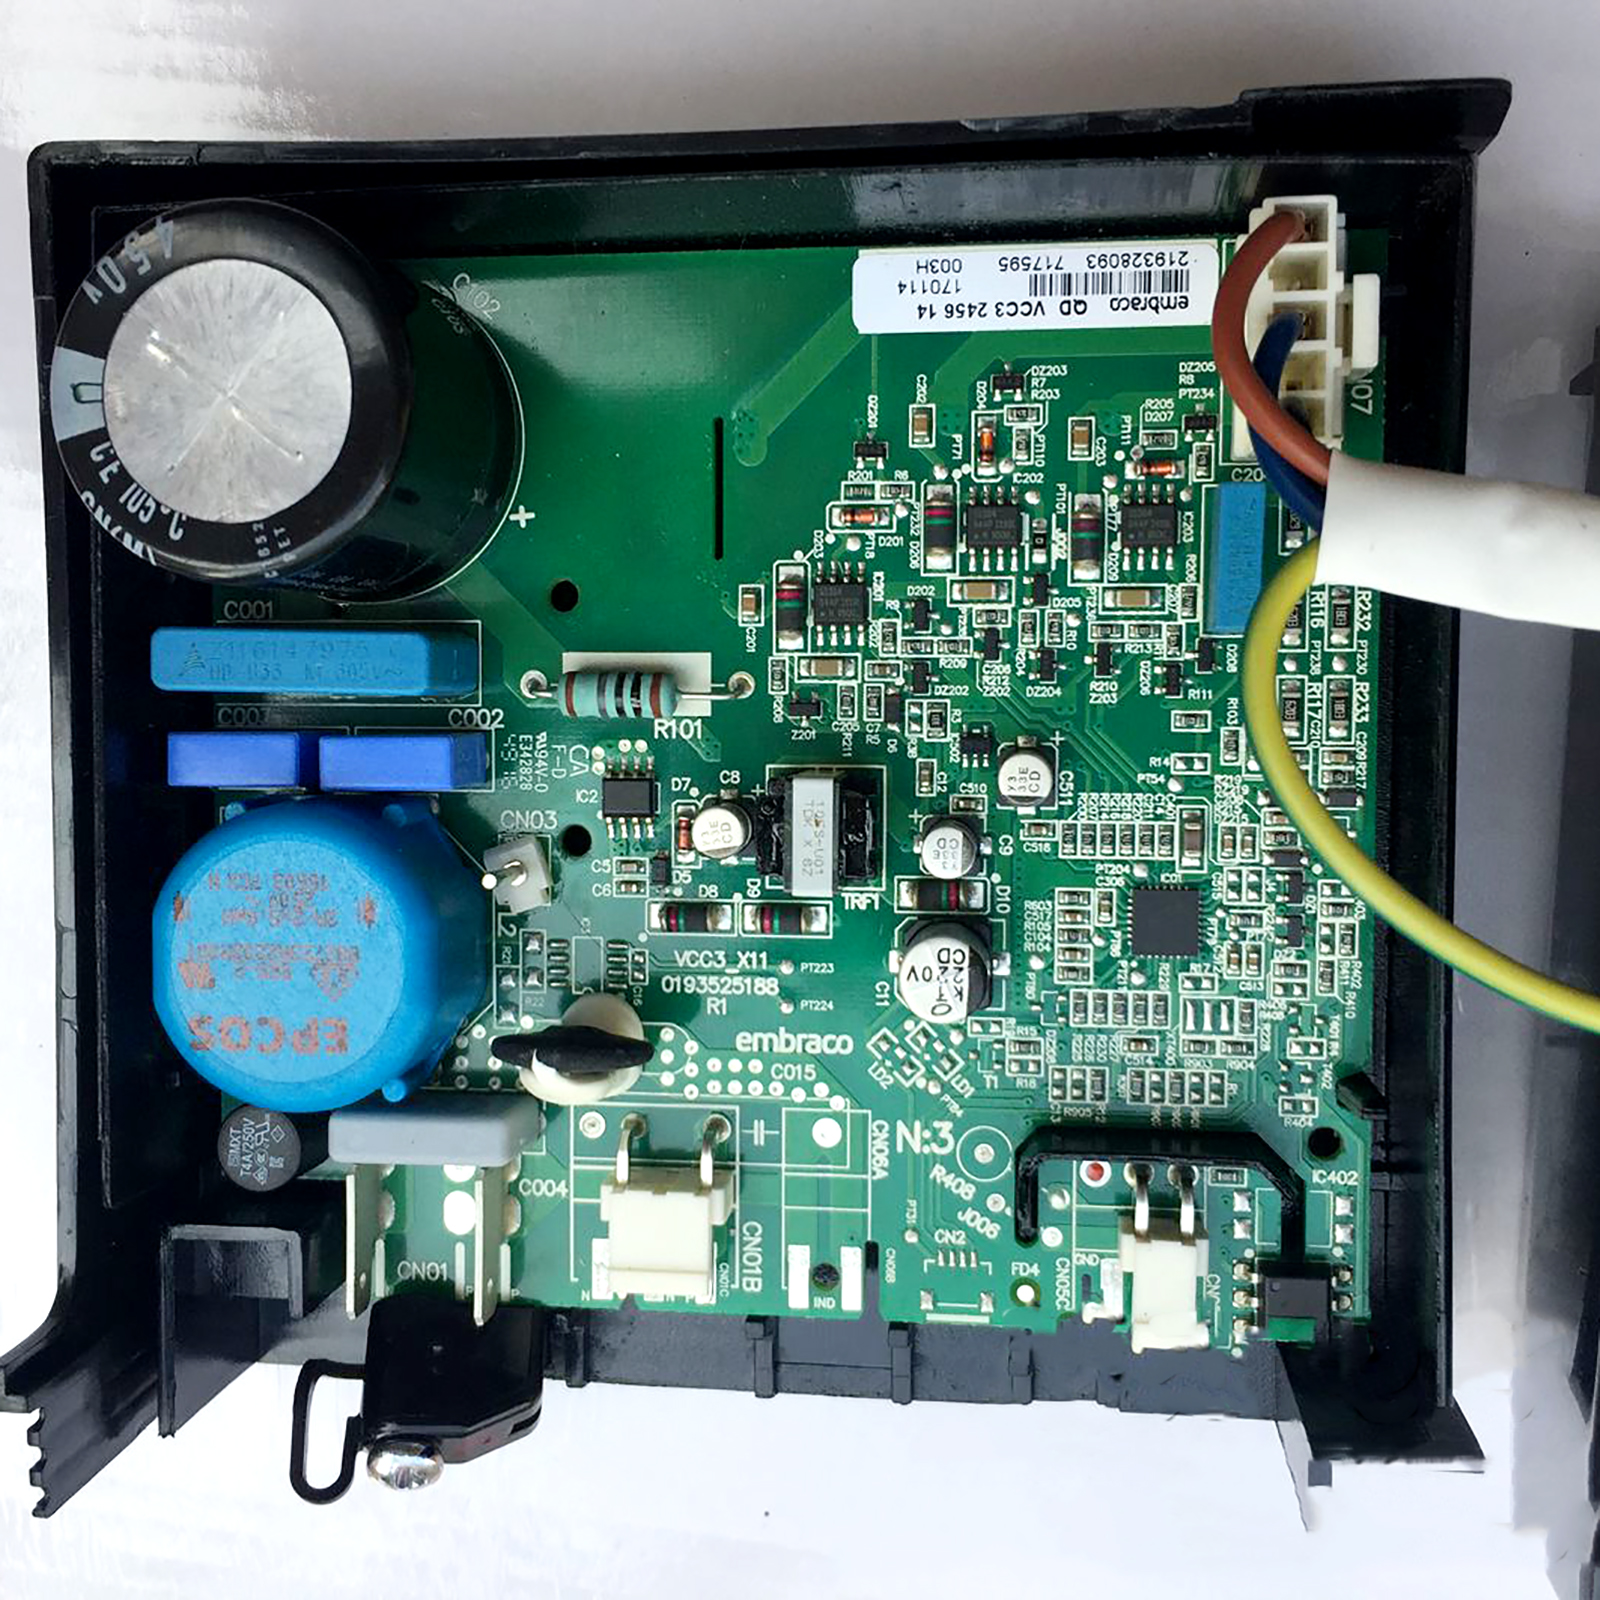 Inverter Board Driver Board 0193525188 Embraco QD VCC3 2456 14 F 02 For Hair Meiling Refrigerator Accessories New